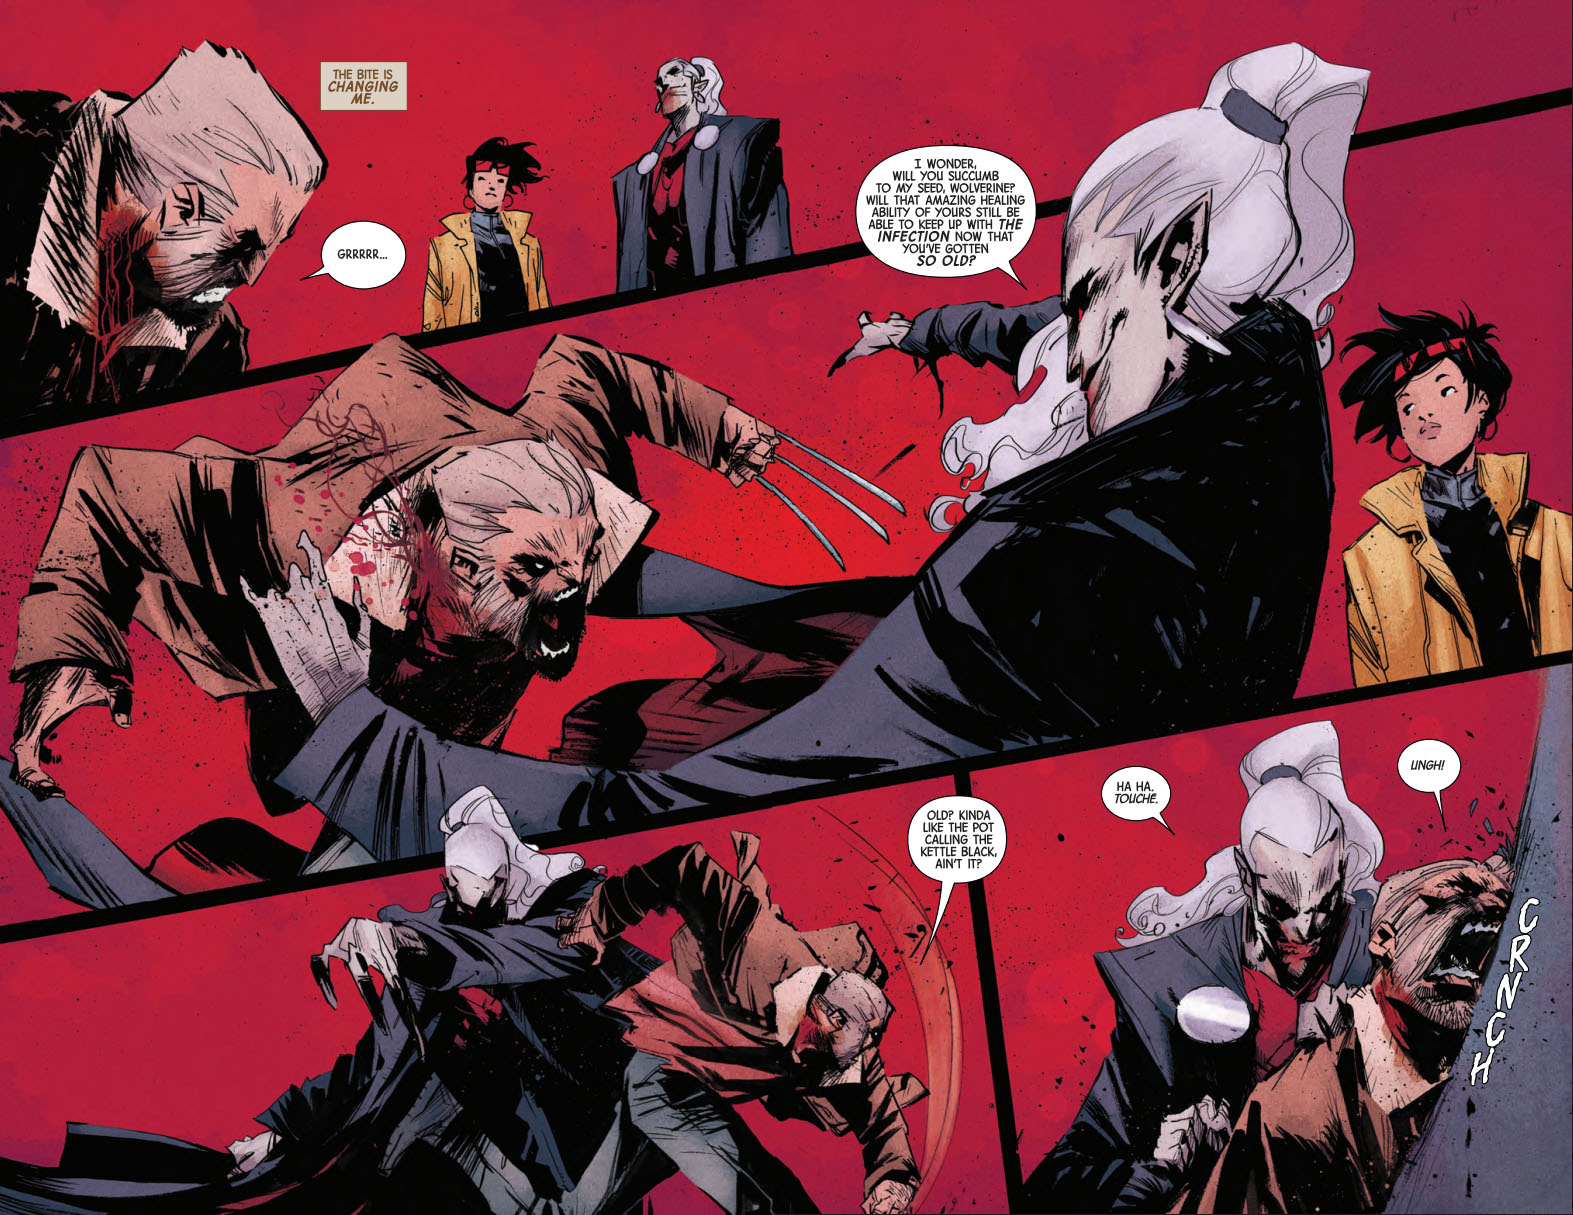 Old Man Logan 15 pages 2 and 3